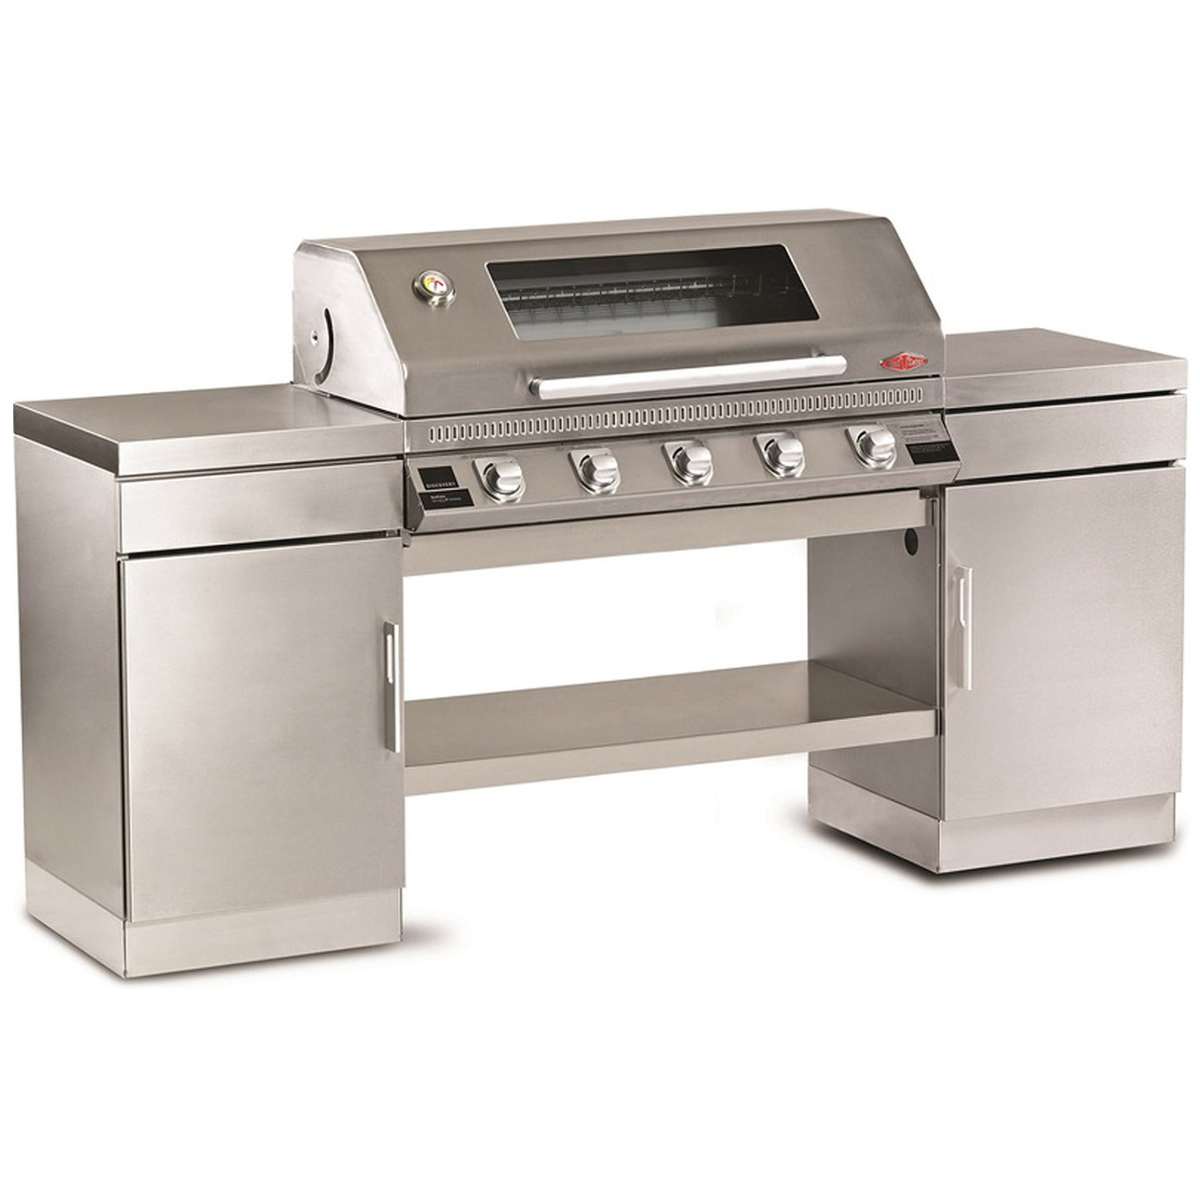 Beefeater 79650 Discovery 1100S Outdoor LPG BBQ